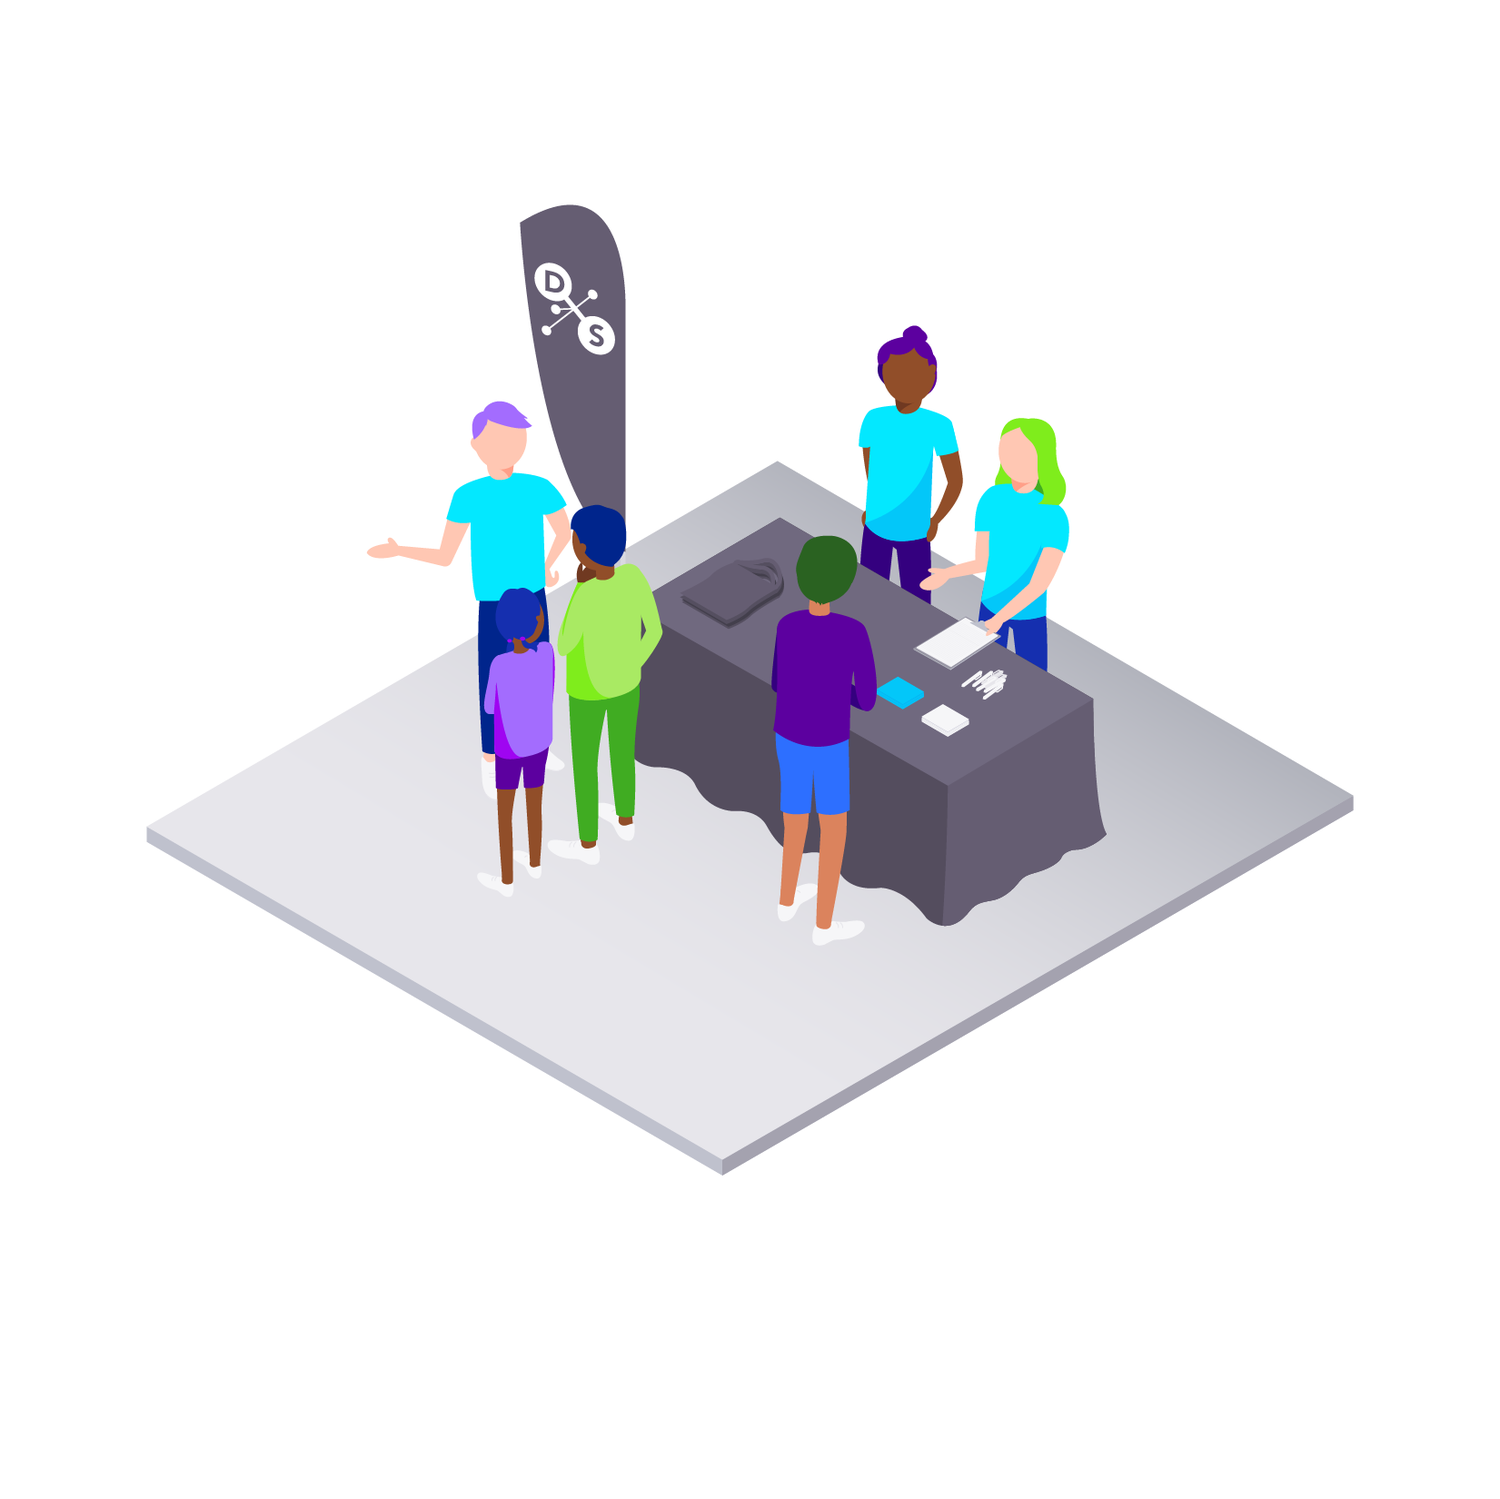 DS-INT_isometric-2019MAY10_walk.png